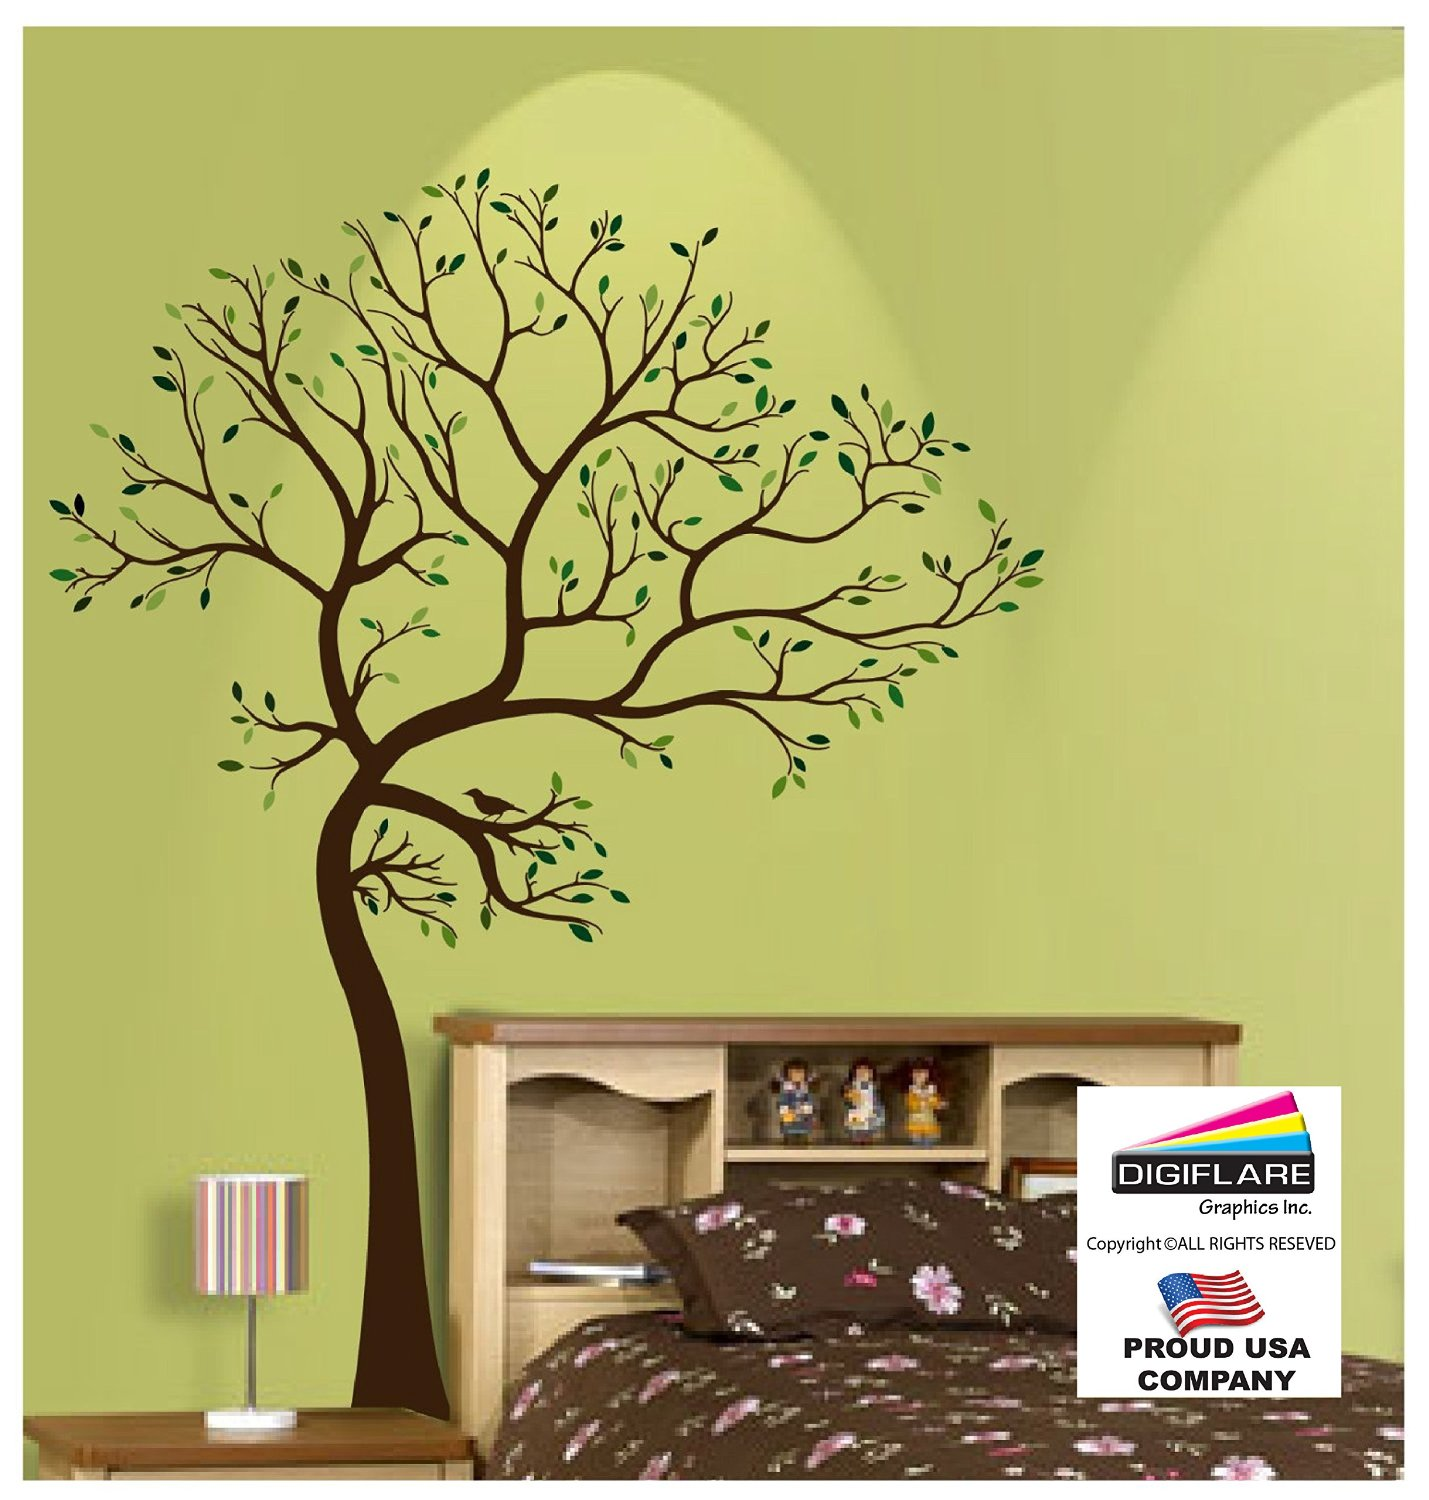 Cheap Tree Wall Deco, find Tree Wall Deco deals on line at Alibaba.com